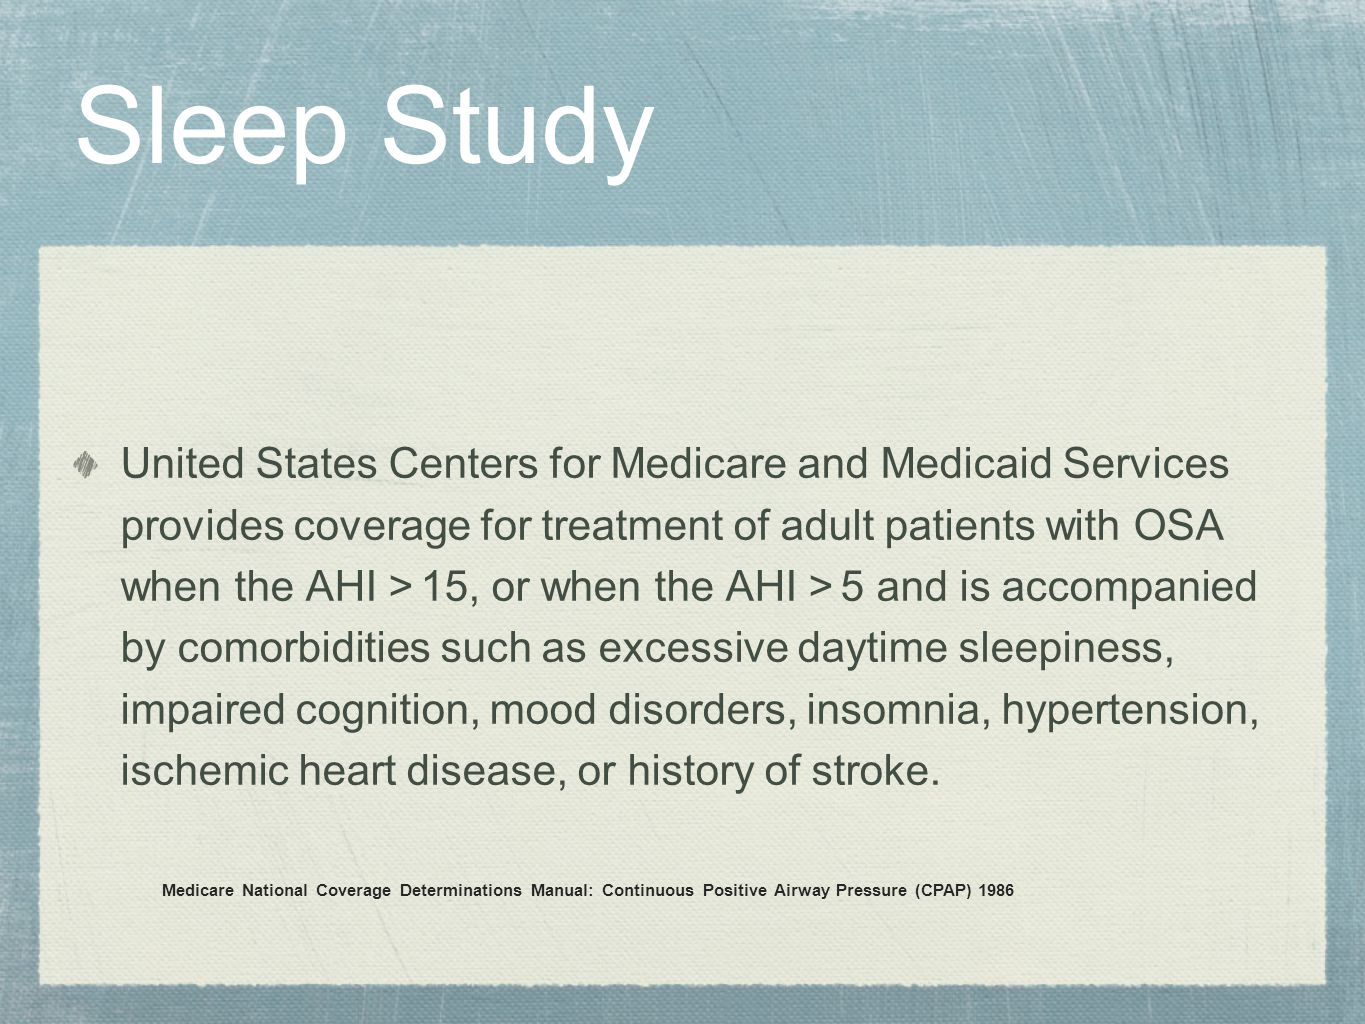 Sleep Study United States Centers for Medicare and Medicaid Services provides coverage for treatment of adult patients with OSA when the AHI > 15, or